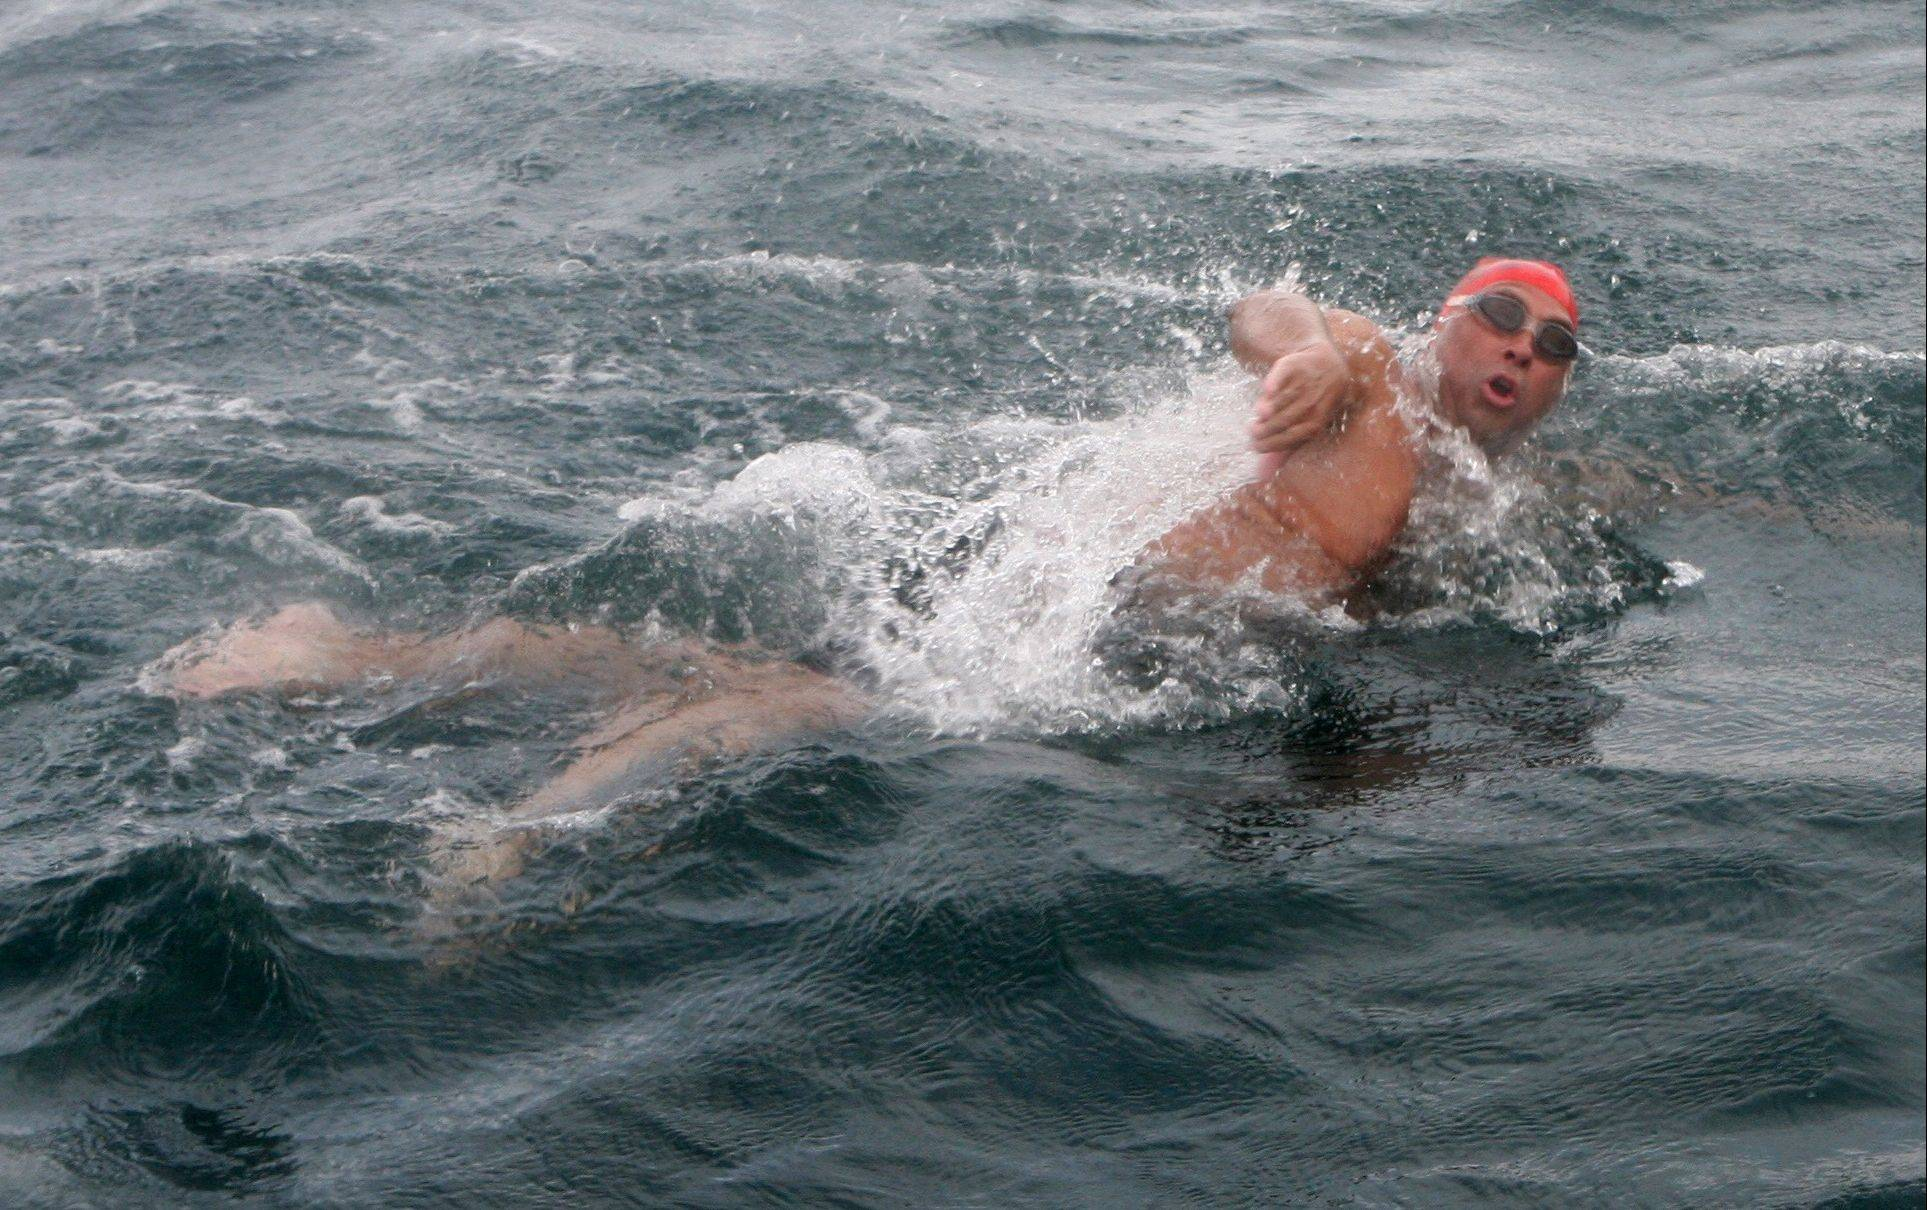 Doug McConnell of Barrington in the midst of his successful swim across the English Channel last month. He became only the 48th person over the age of 50 to complete the challenging swim.